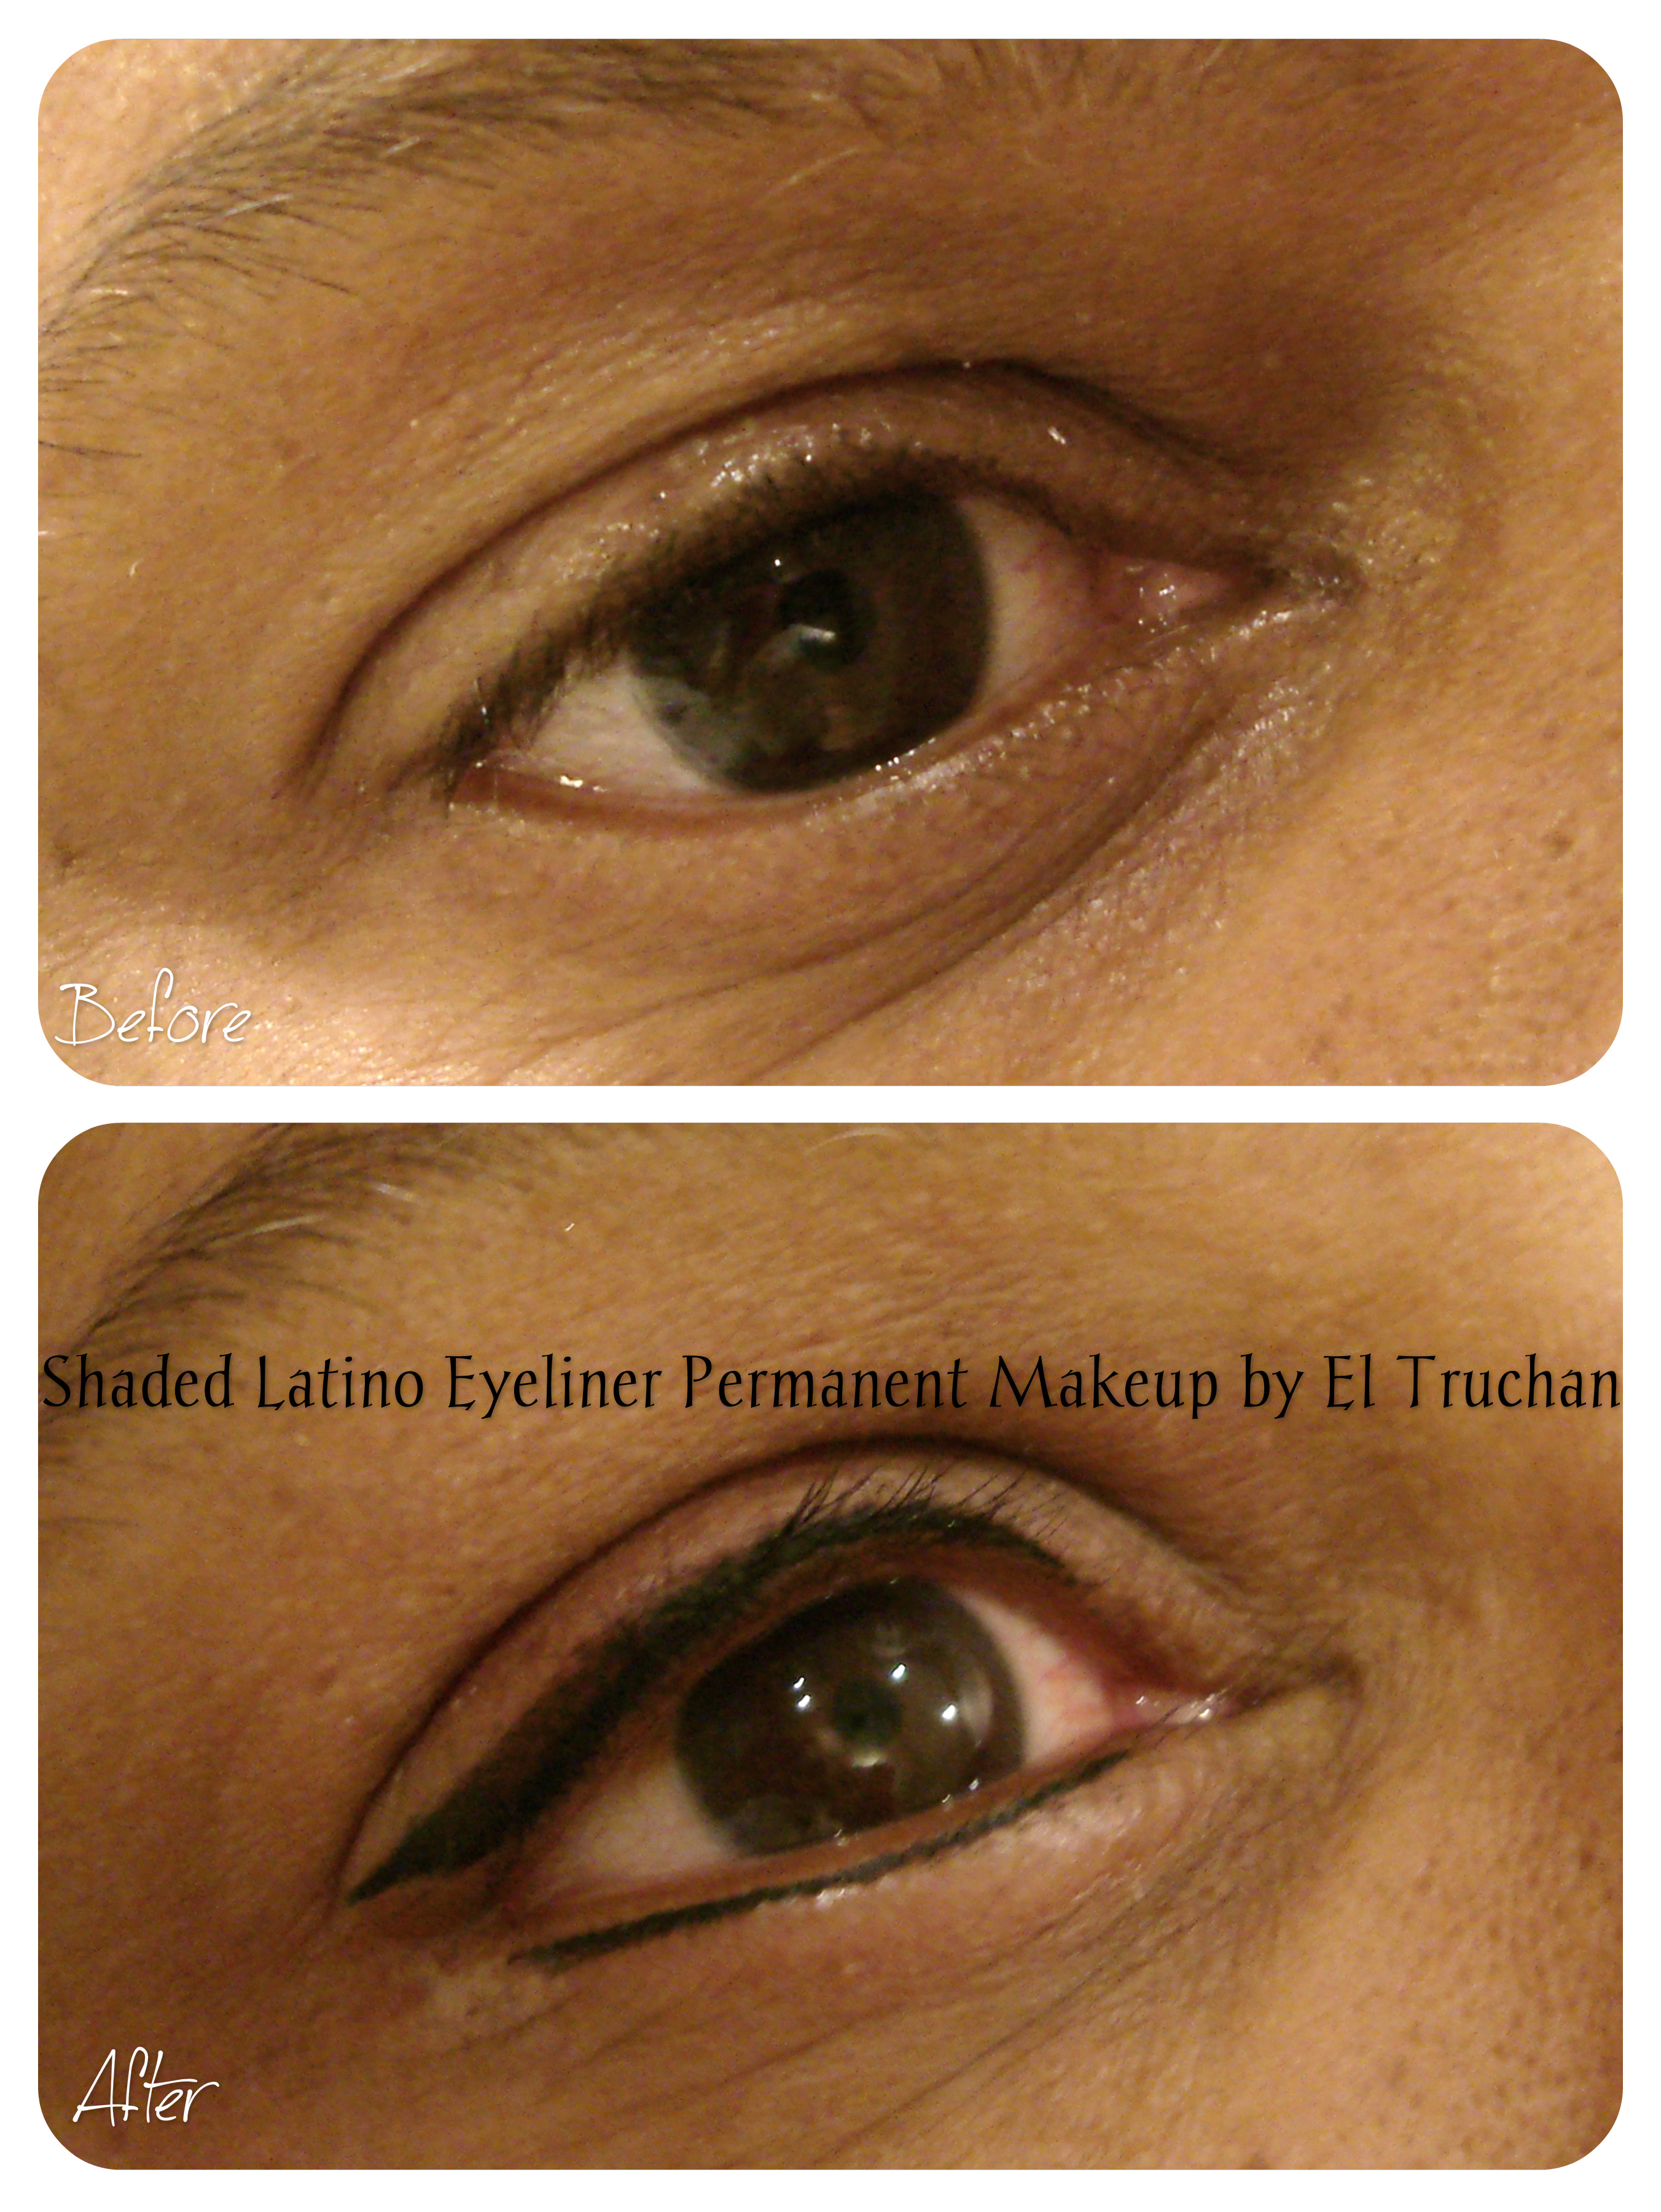 Shaded Latino eyeliner by El Truchan